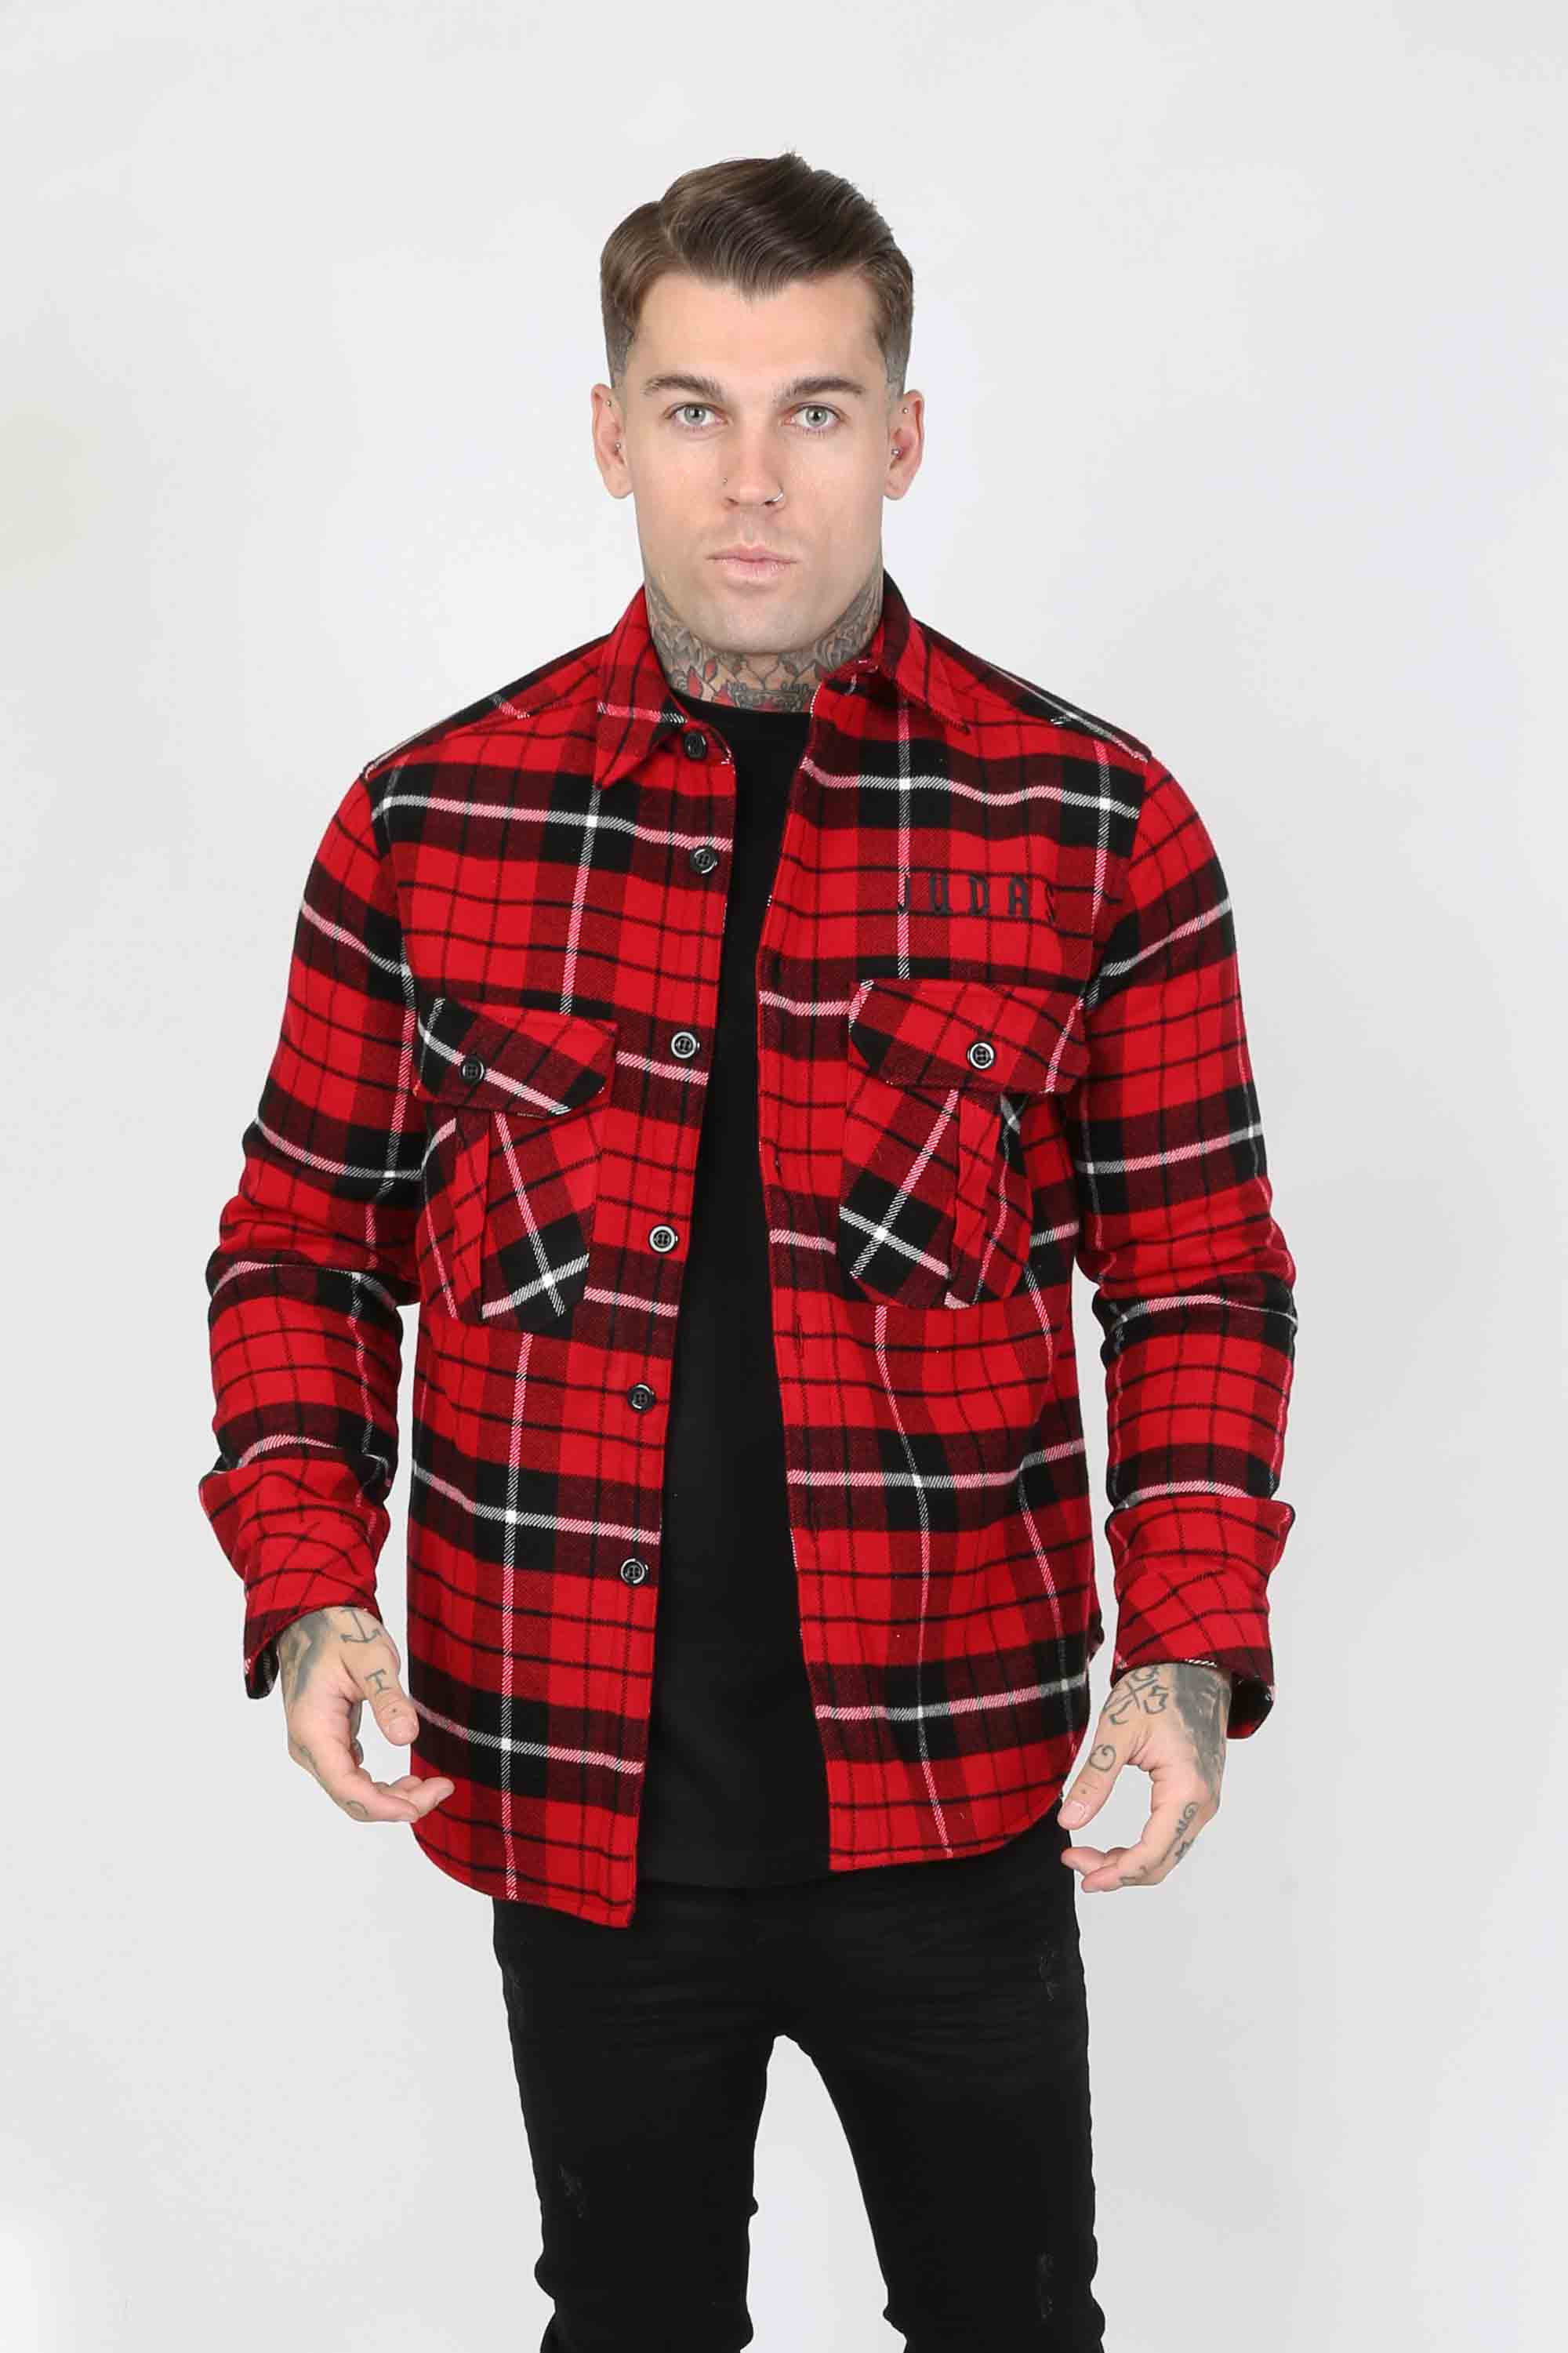 Over Plaid Men's Shirt - Red, Small